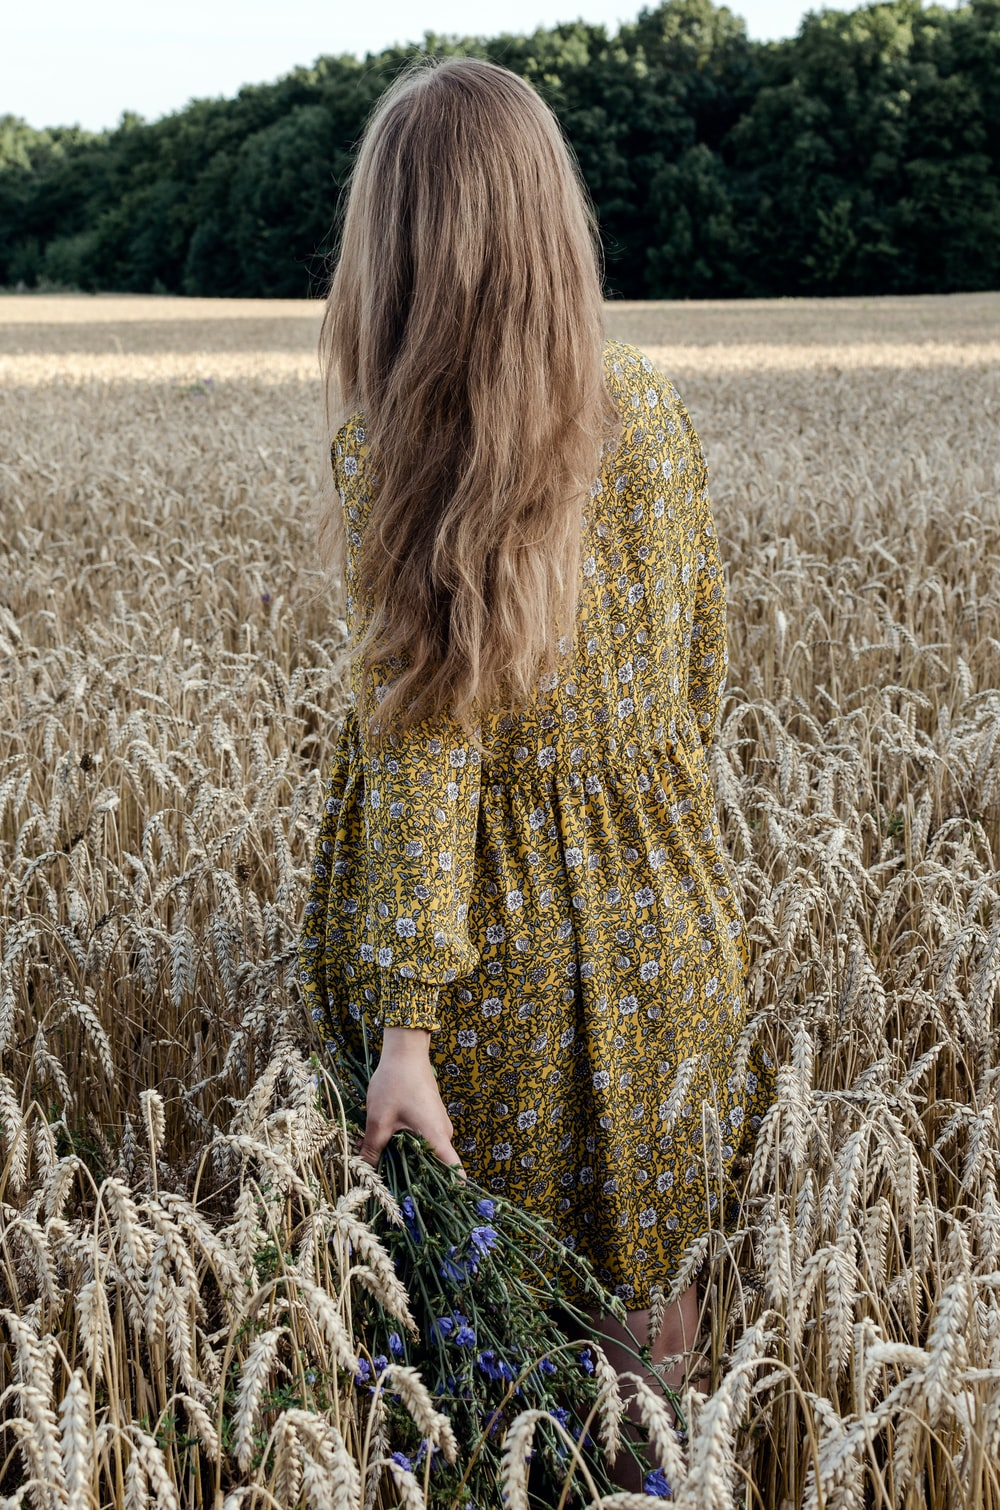 woman in yellow and black dress standing on brown grass field during daytime